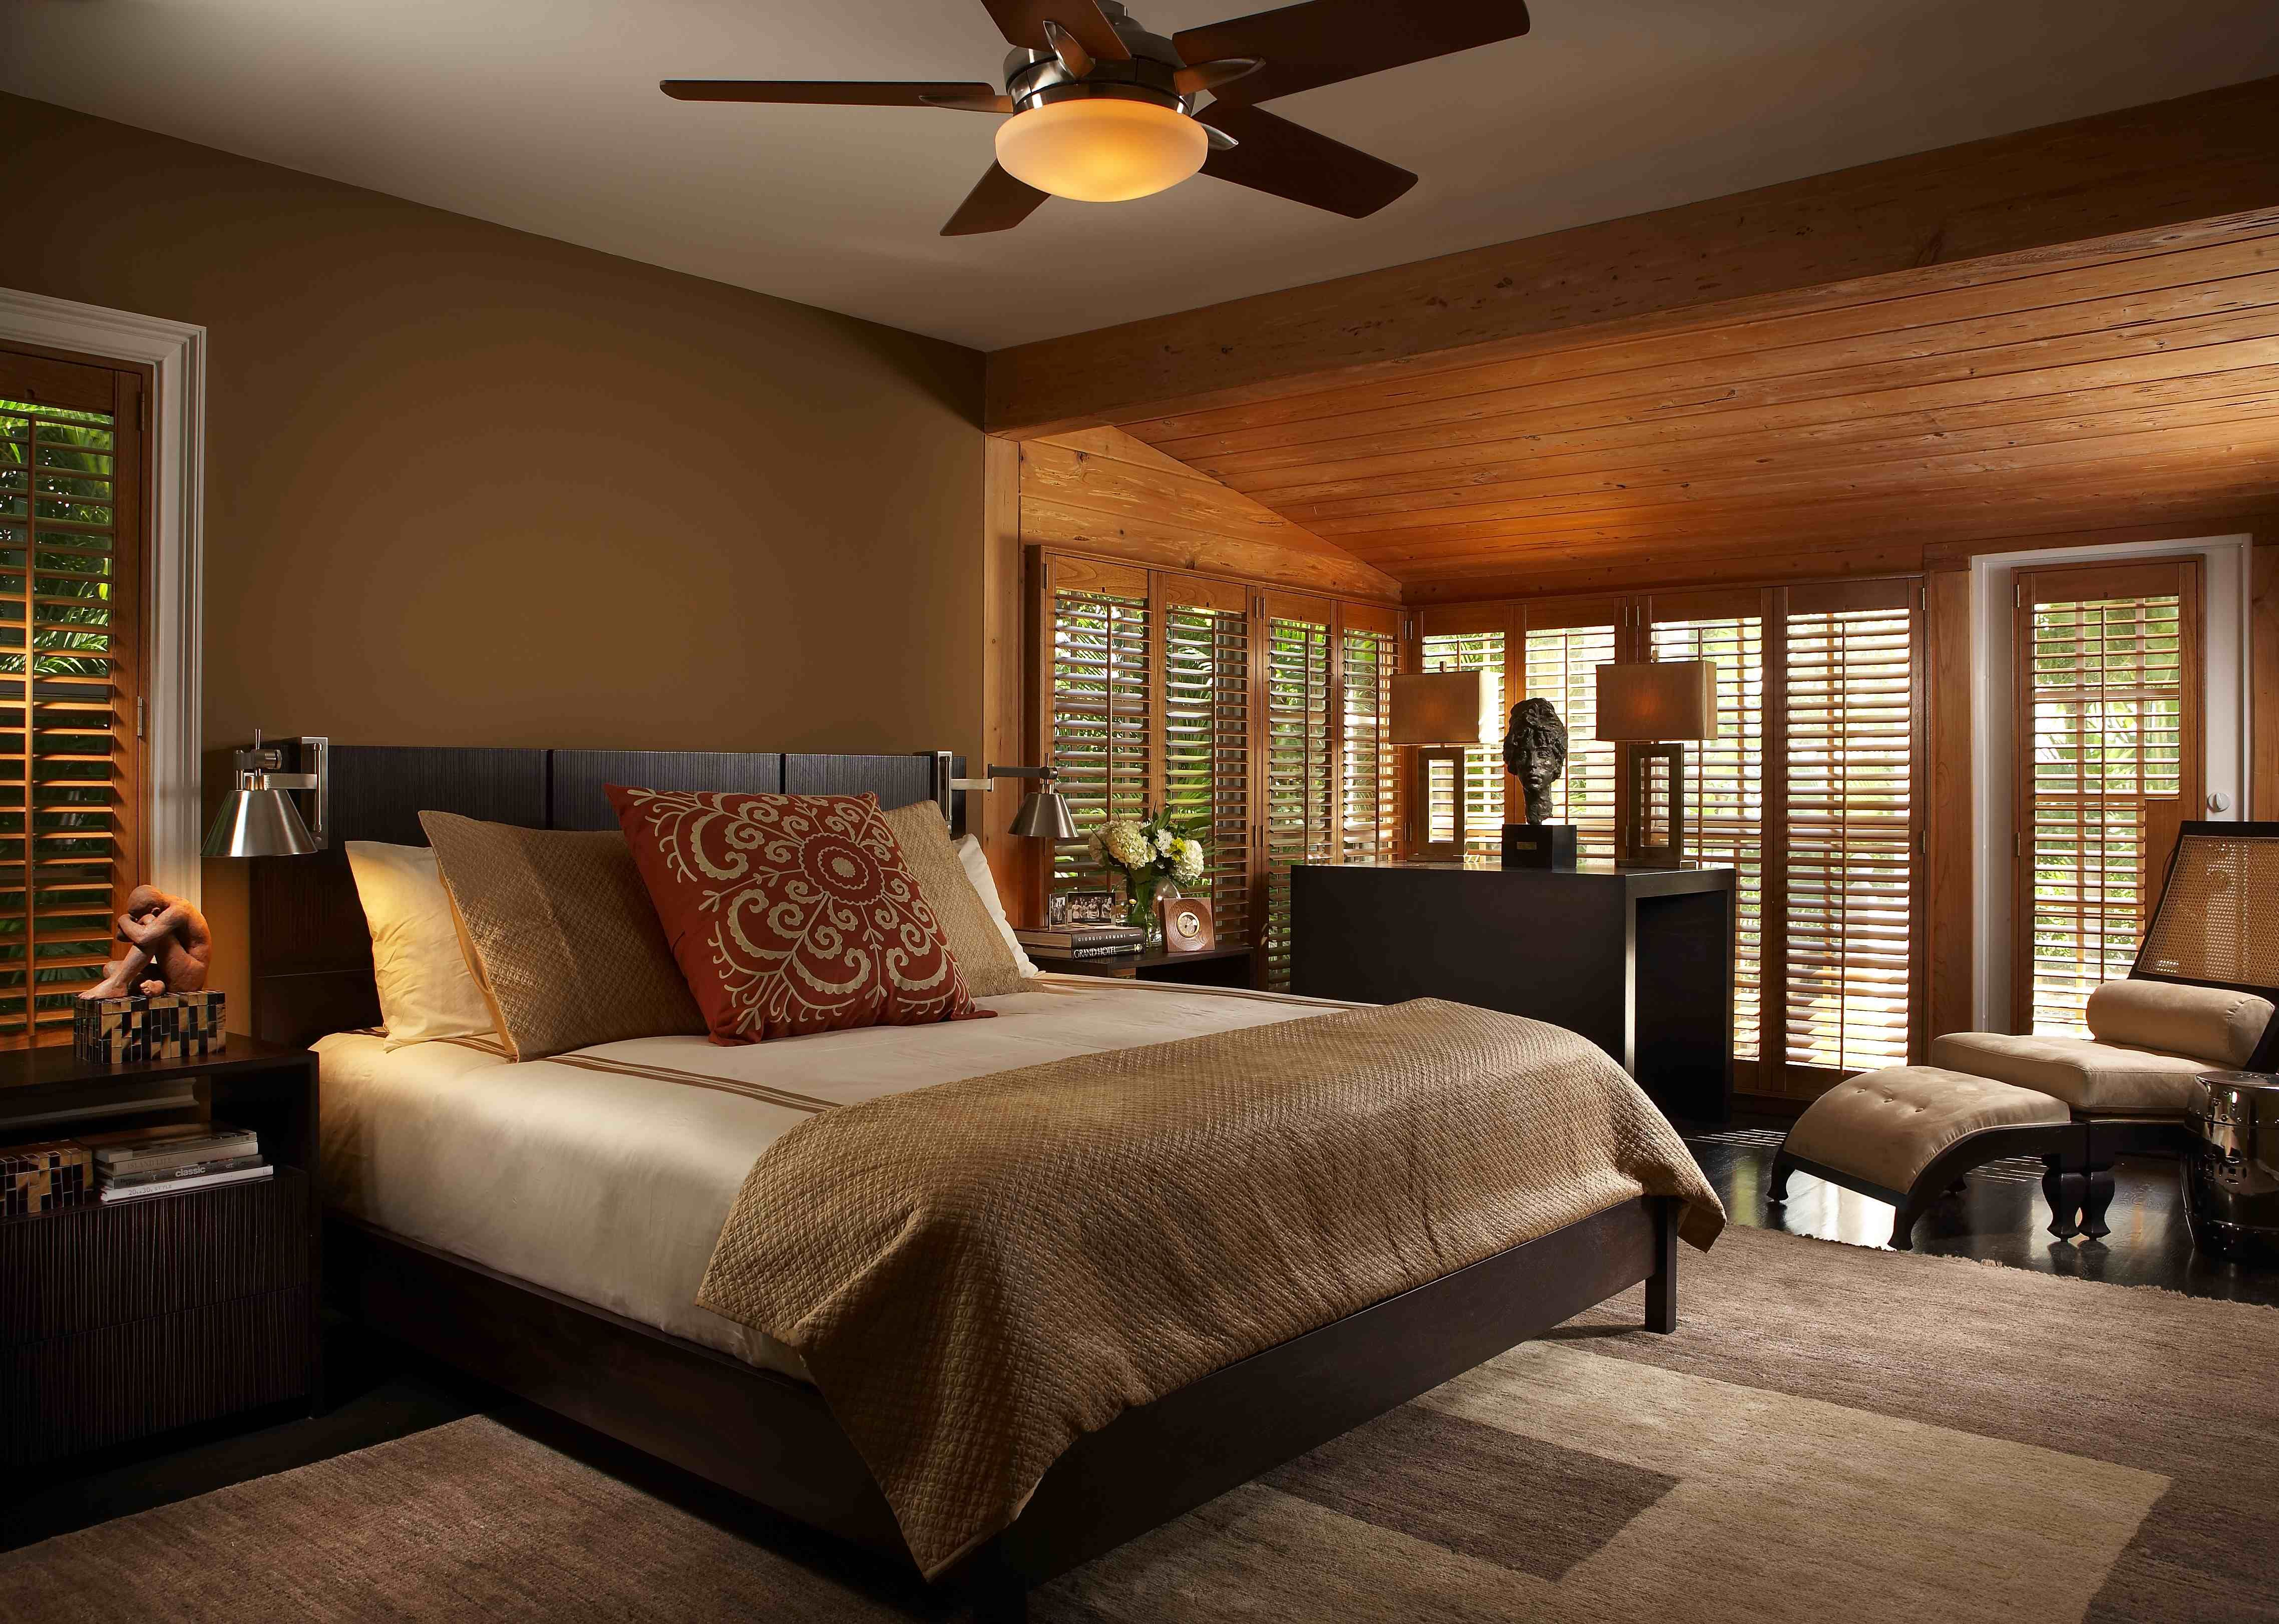 Master Bedroom Warm Bedroom Colors Warm Bedroom Colors Warm Bedroom Bedroom Colors